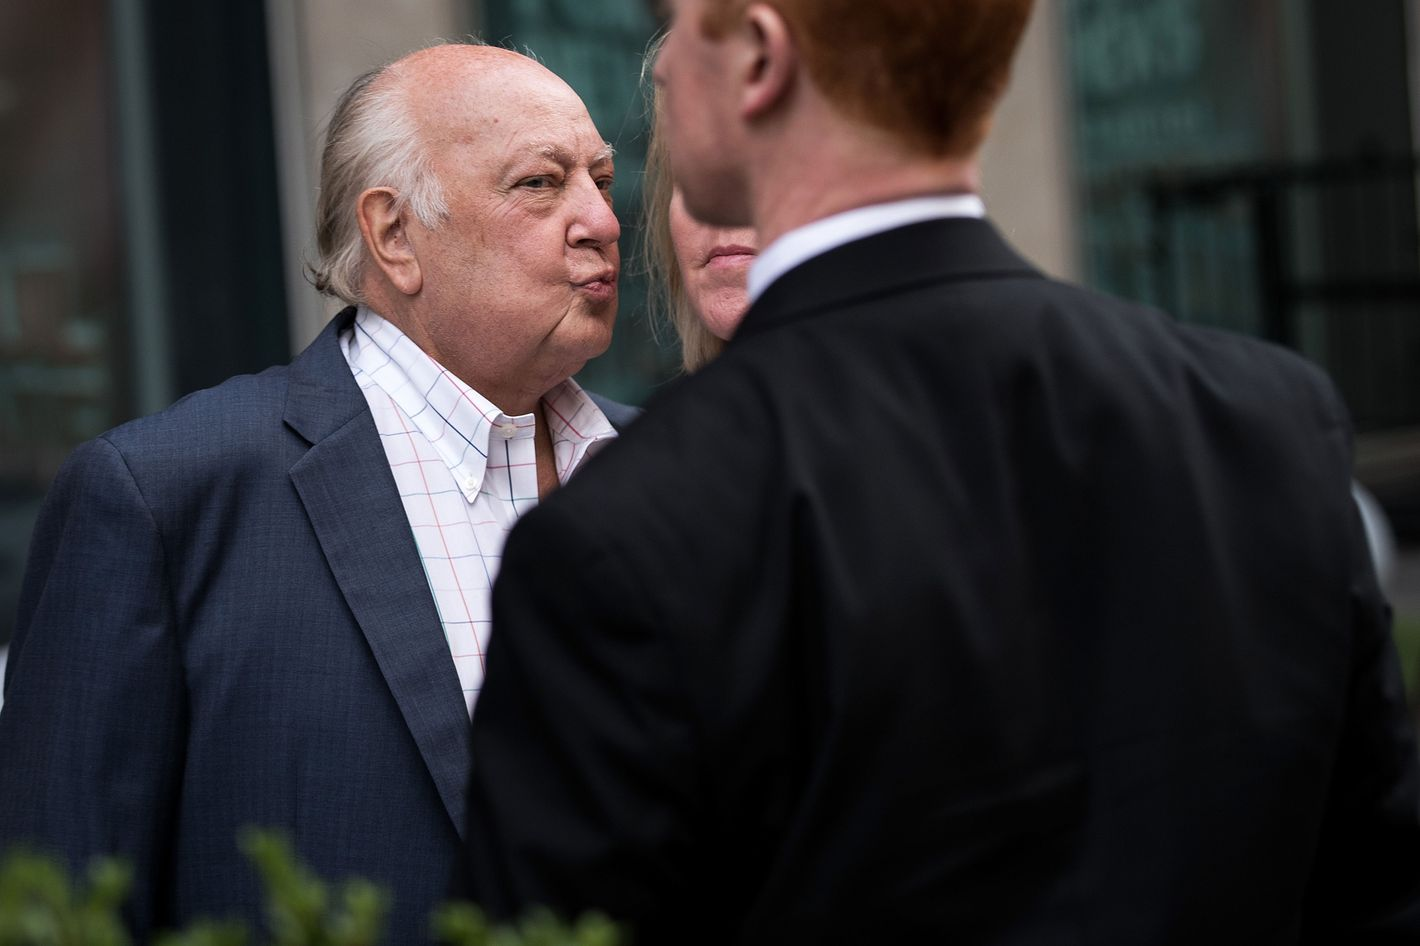 Ailes used Fox funds against enemies